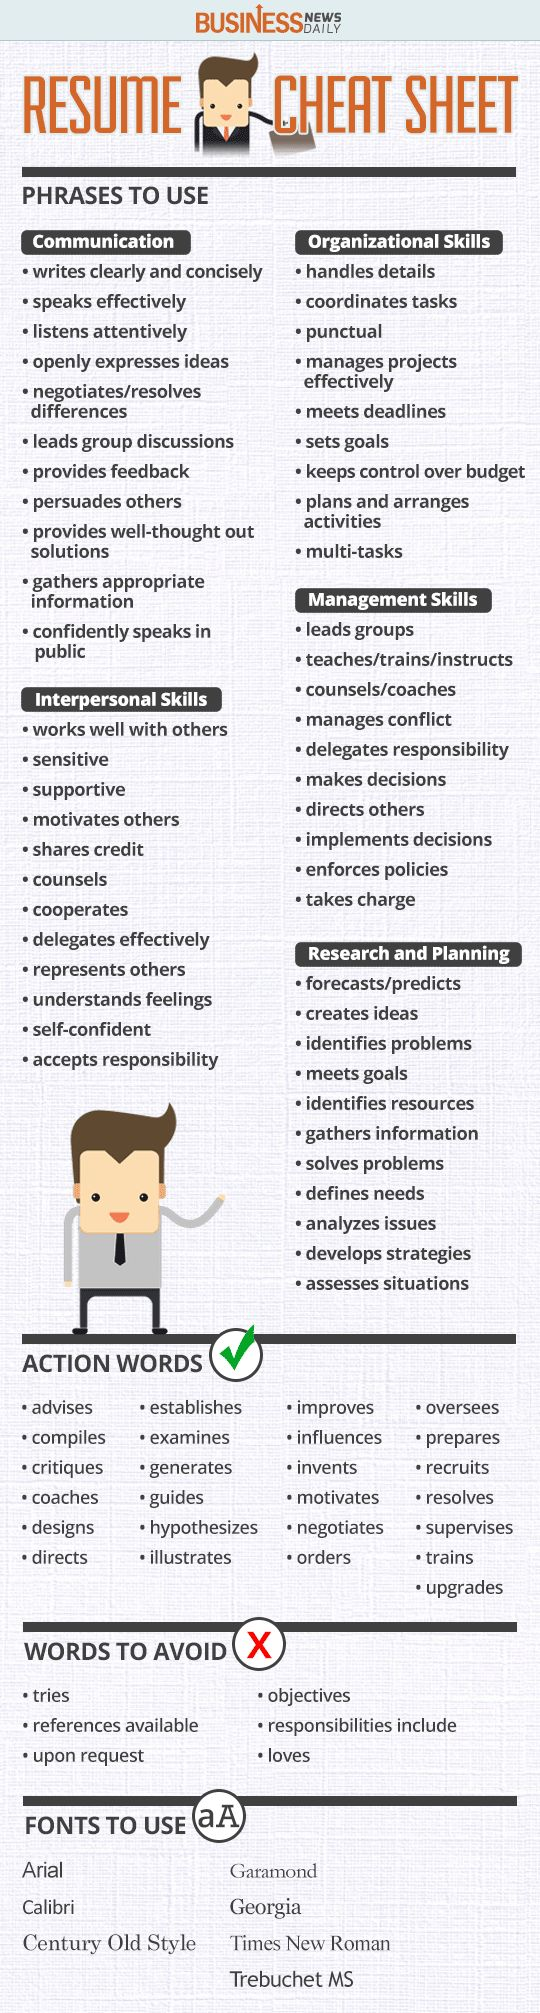 Opposenewapstandardsus  Pretty  Ideas About Resume On Pinterest  Cv Format Resume Cv And  With Outstanding Resume Cheat Sheet Infographic Andrews Almost Done With A Complete Unit On Employment Which With Breathtaking Best Resume Builder App Also Attorney Resumes In Addition Easy Resume Format And Resume Work History As Well As Resume Key Skills Additionally How To Make My Resume From Pinterestcom With Opposenewapstandardsus  Outstanding  Ideas About Resume On Pinterest  Cv Format Resume Cv And  With Breathtaking Resume Cheat Sheet Infographic Andrews Almost Done With A Complete Unit On Employment Which And Pretty Best Resume Builder App Also Attorney Resumes In Addition Easy Resume Format From Pinterestcom